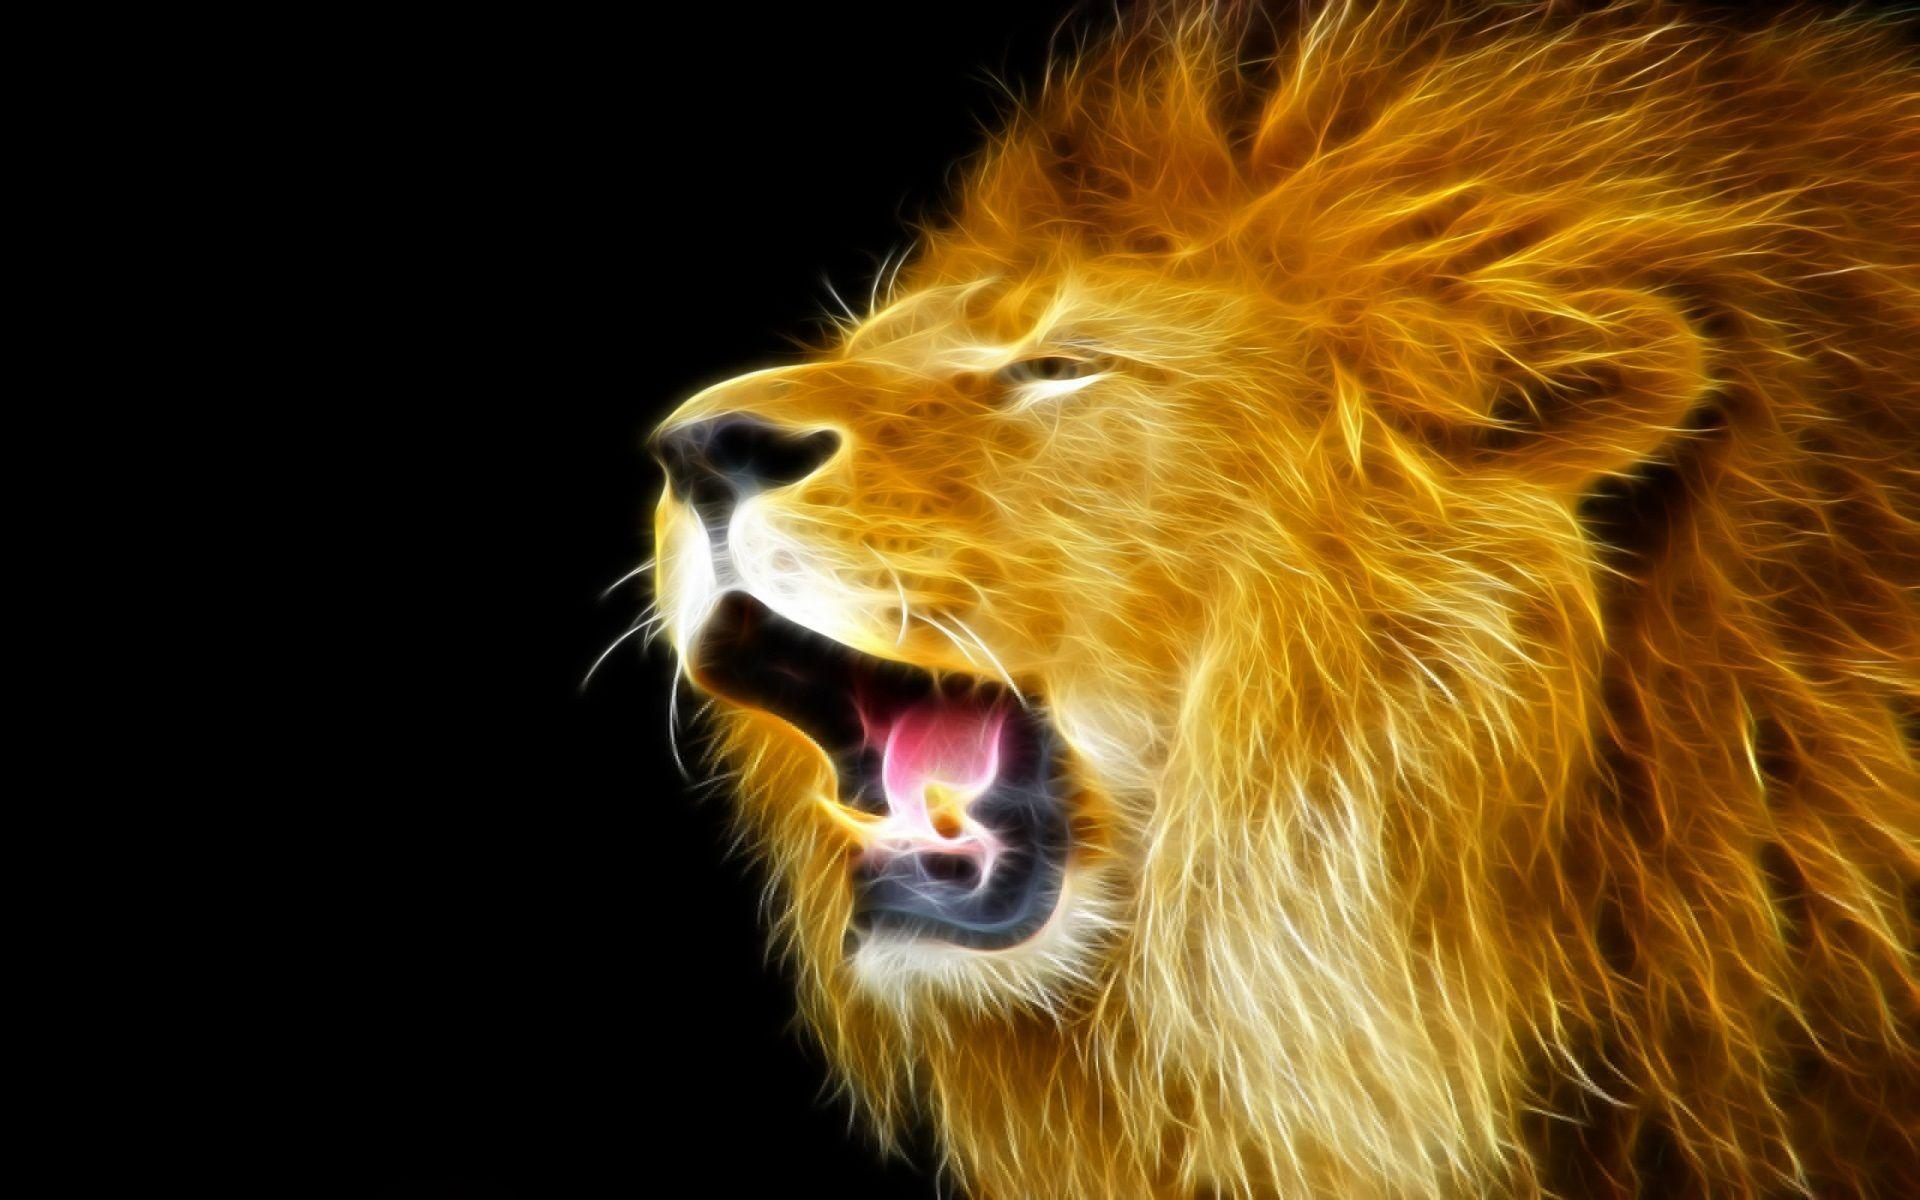 free lion wallpapers - wallpaper cave